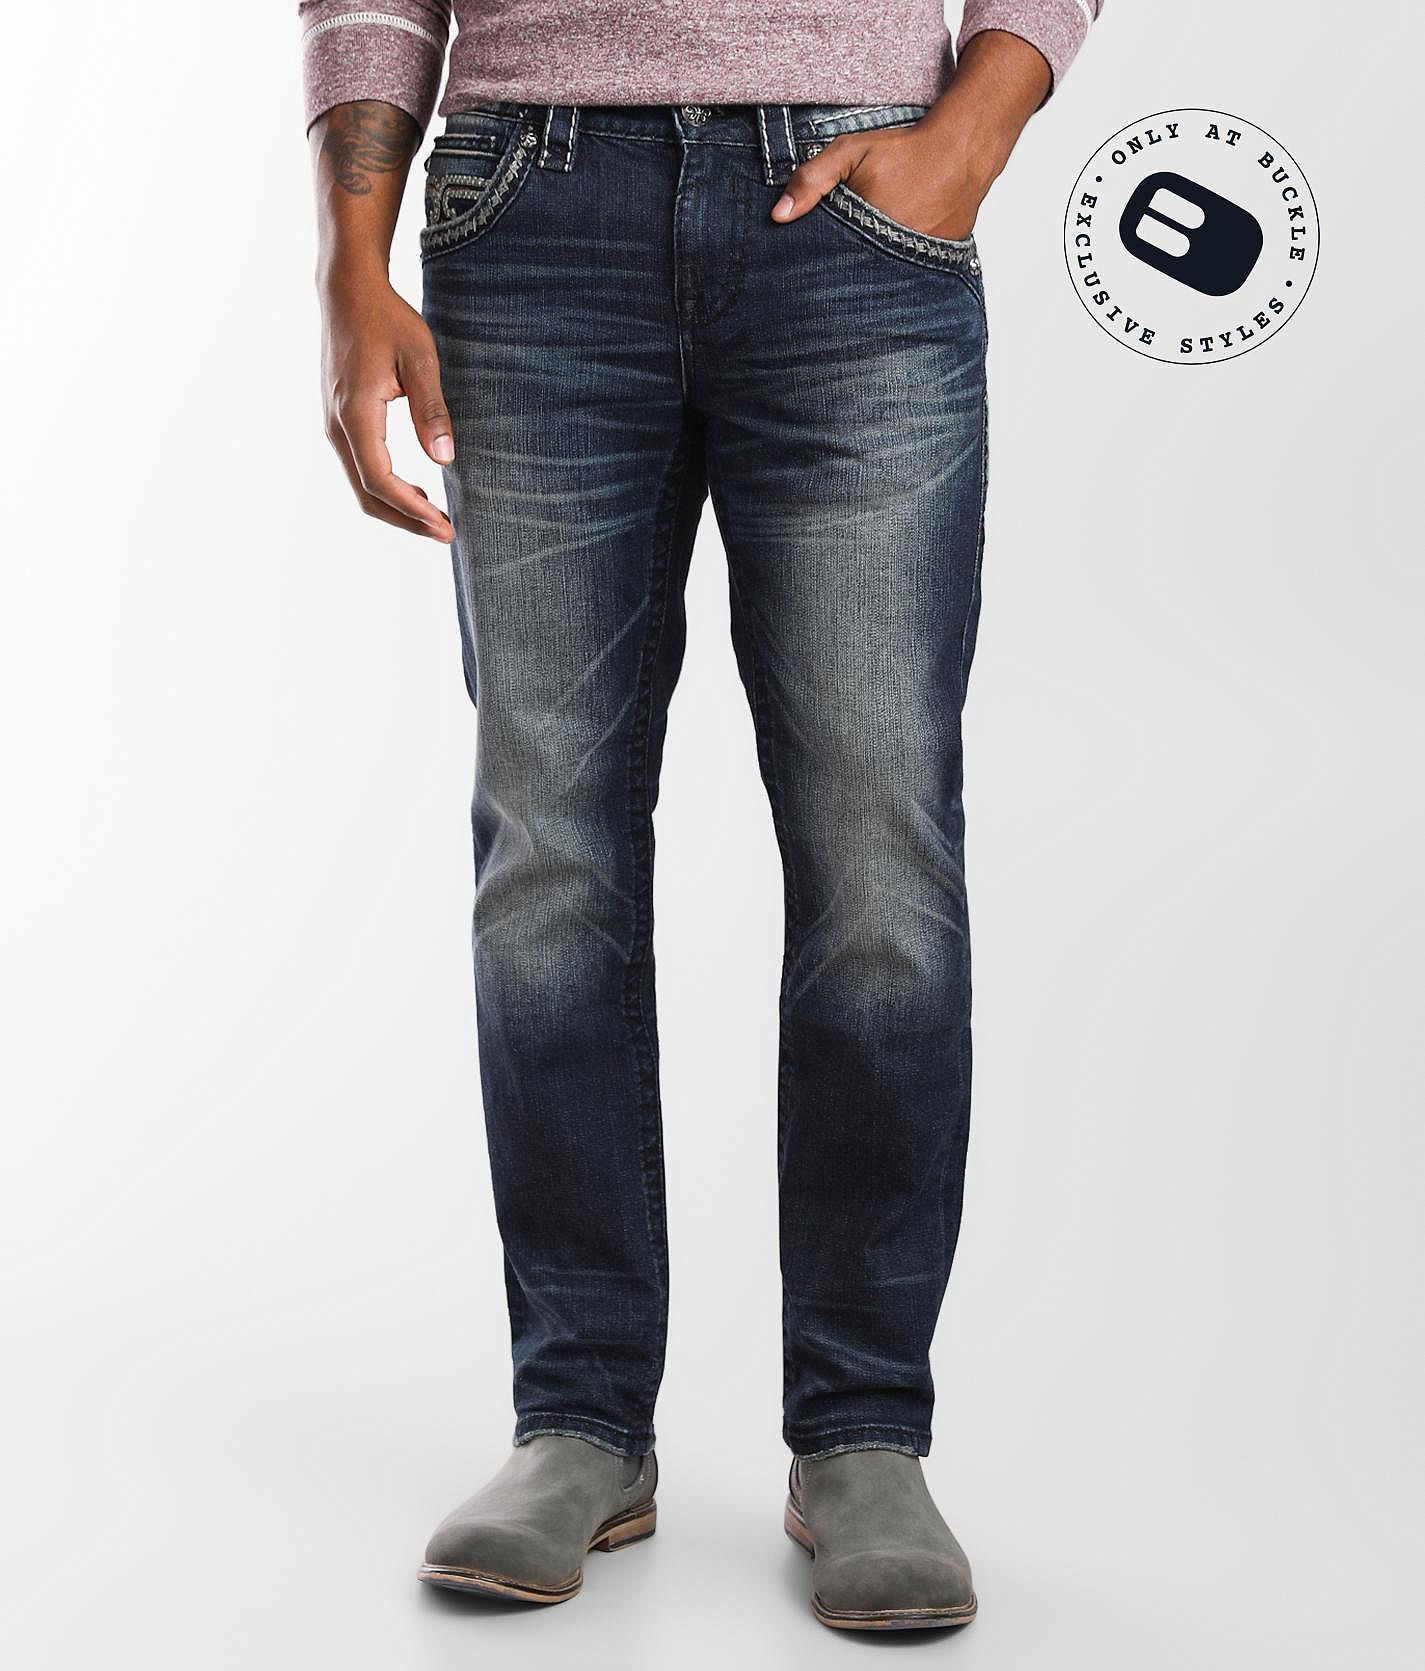 Bolton Slim Straight Stretch Jean by Rock Revival